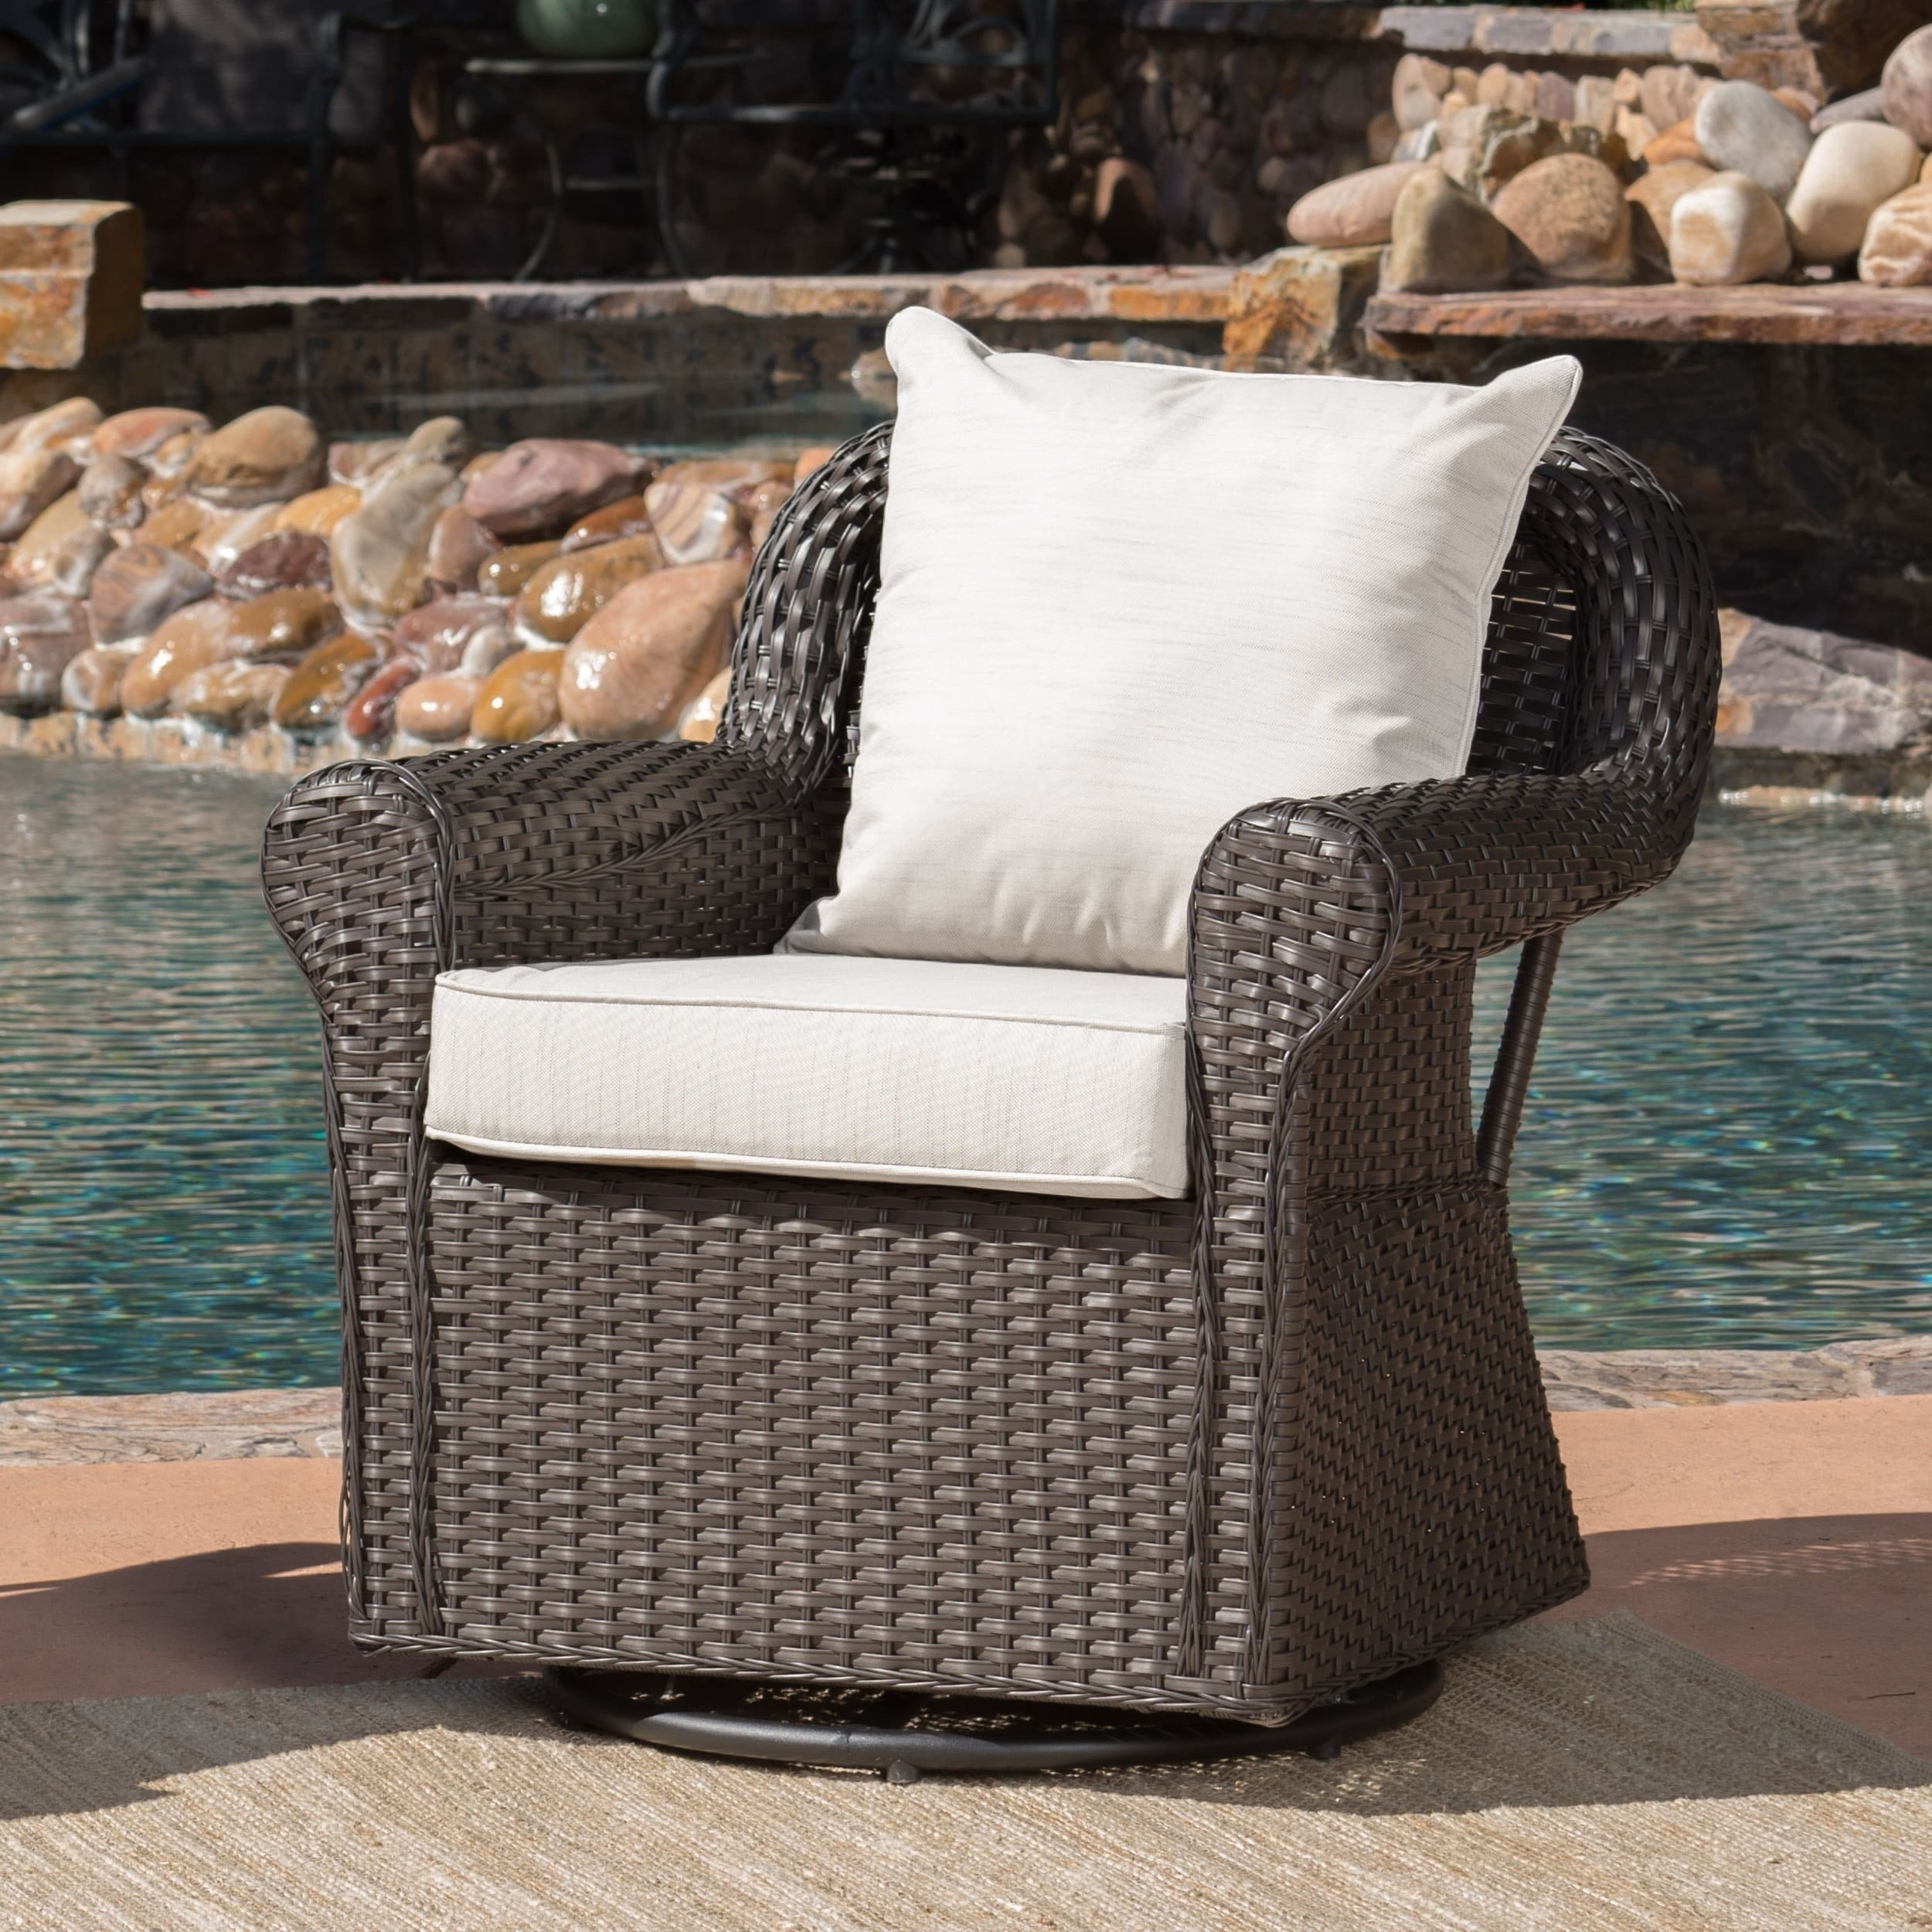 Christopher Knight Home Amaya Outdoor Wicker Swivel Rocking Chair with Cushion by